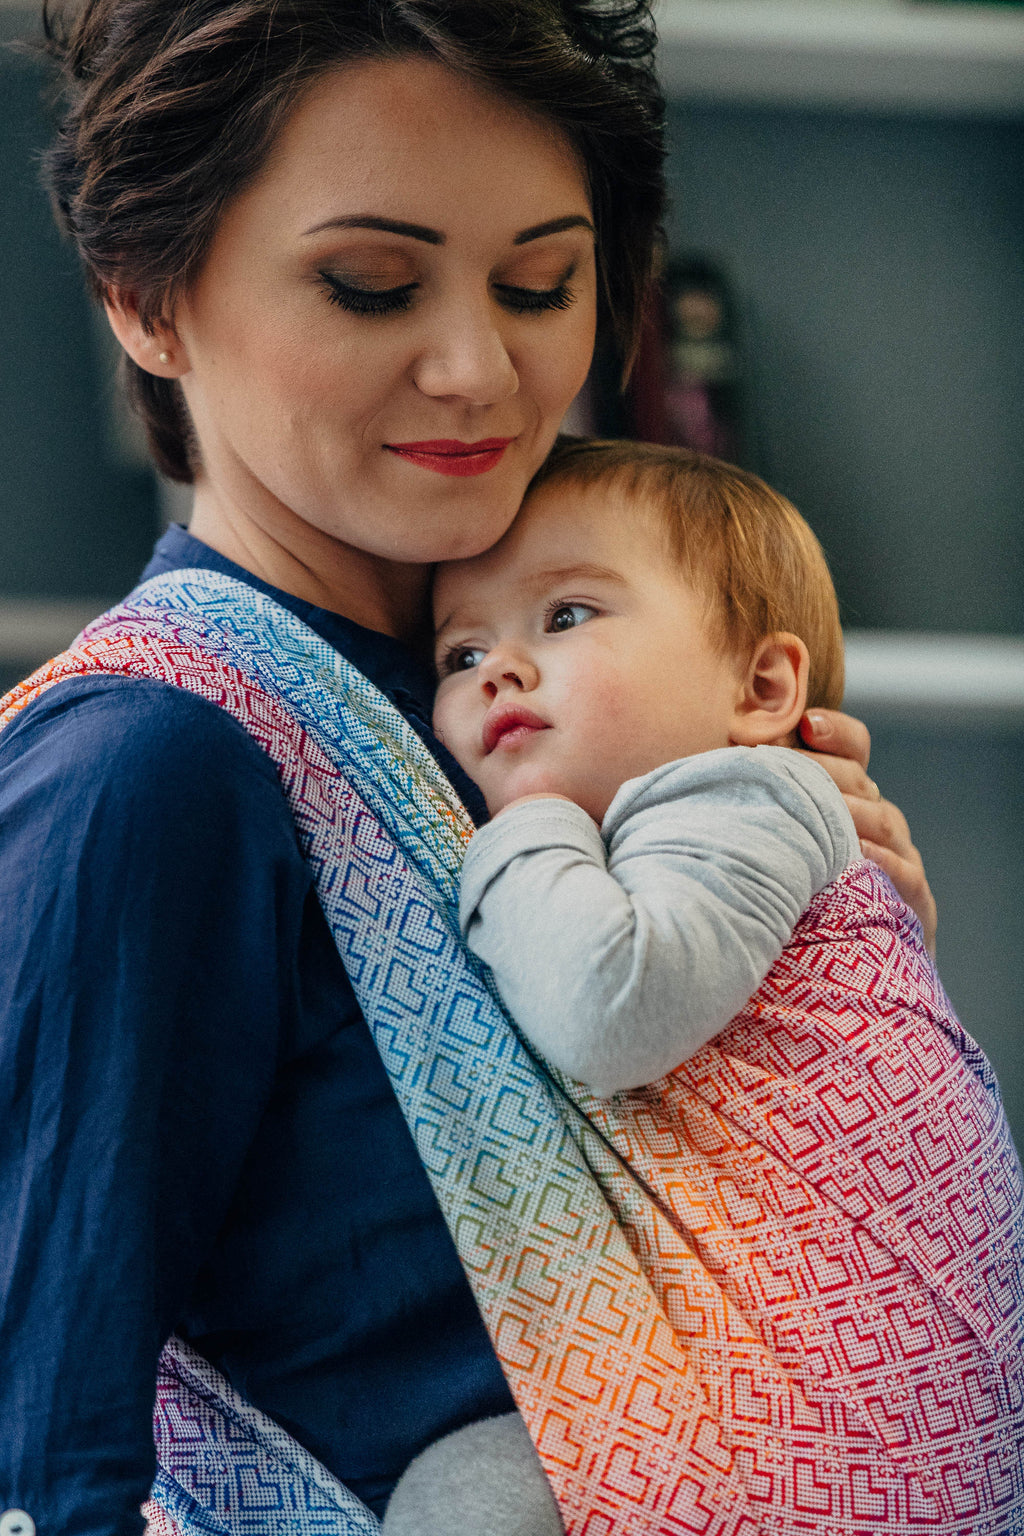 Lenny Lamb Woven Wrap - Big Love Rainbow - Slings and Things